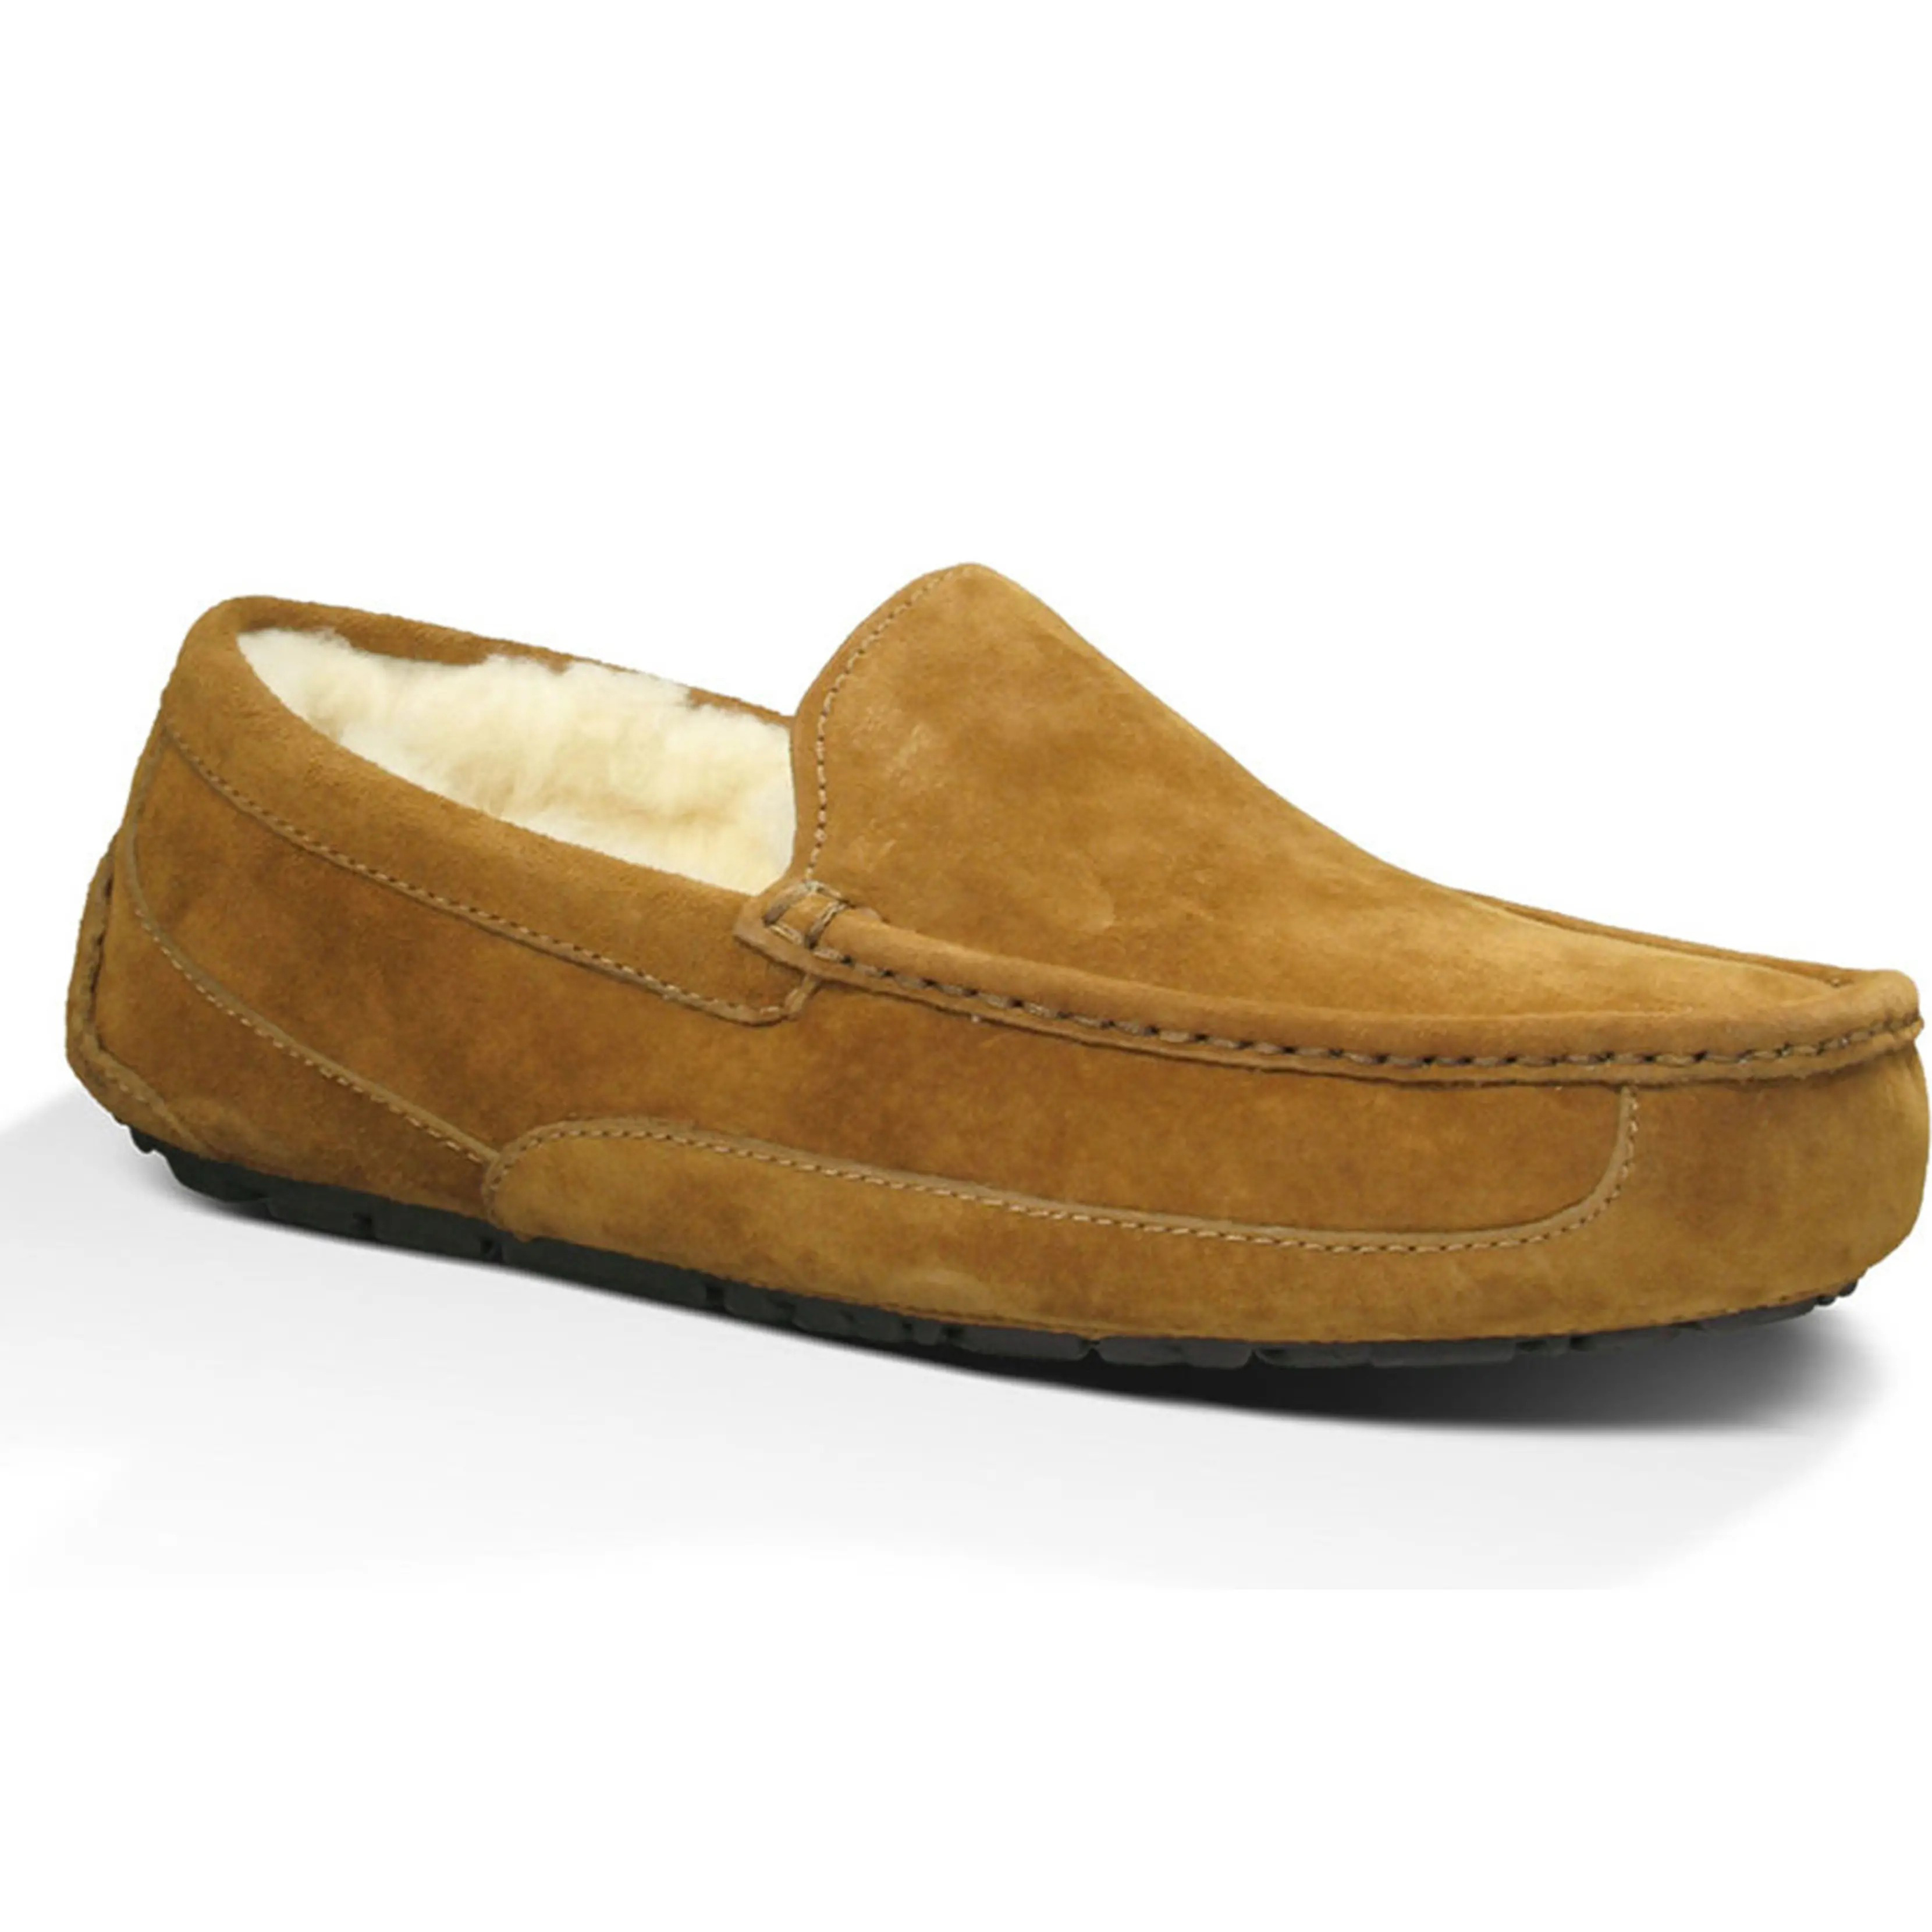 UGG Ascot Slipper, best gifts for dad